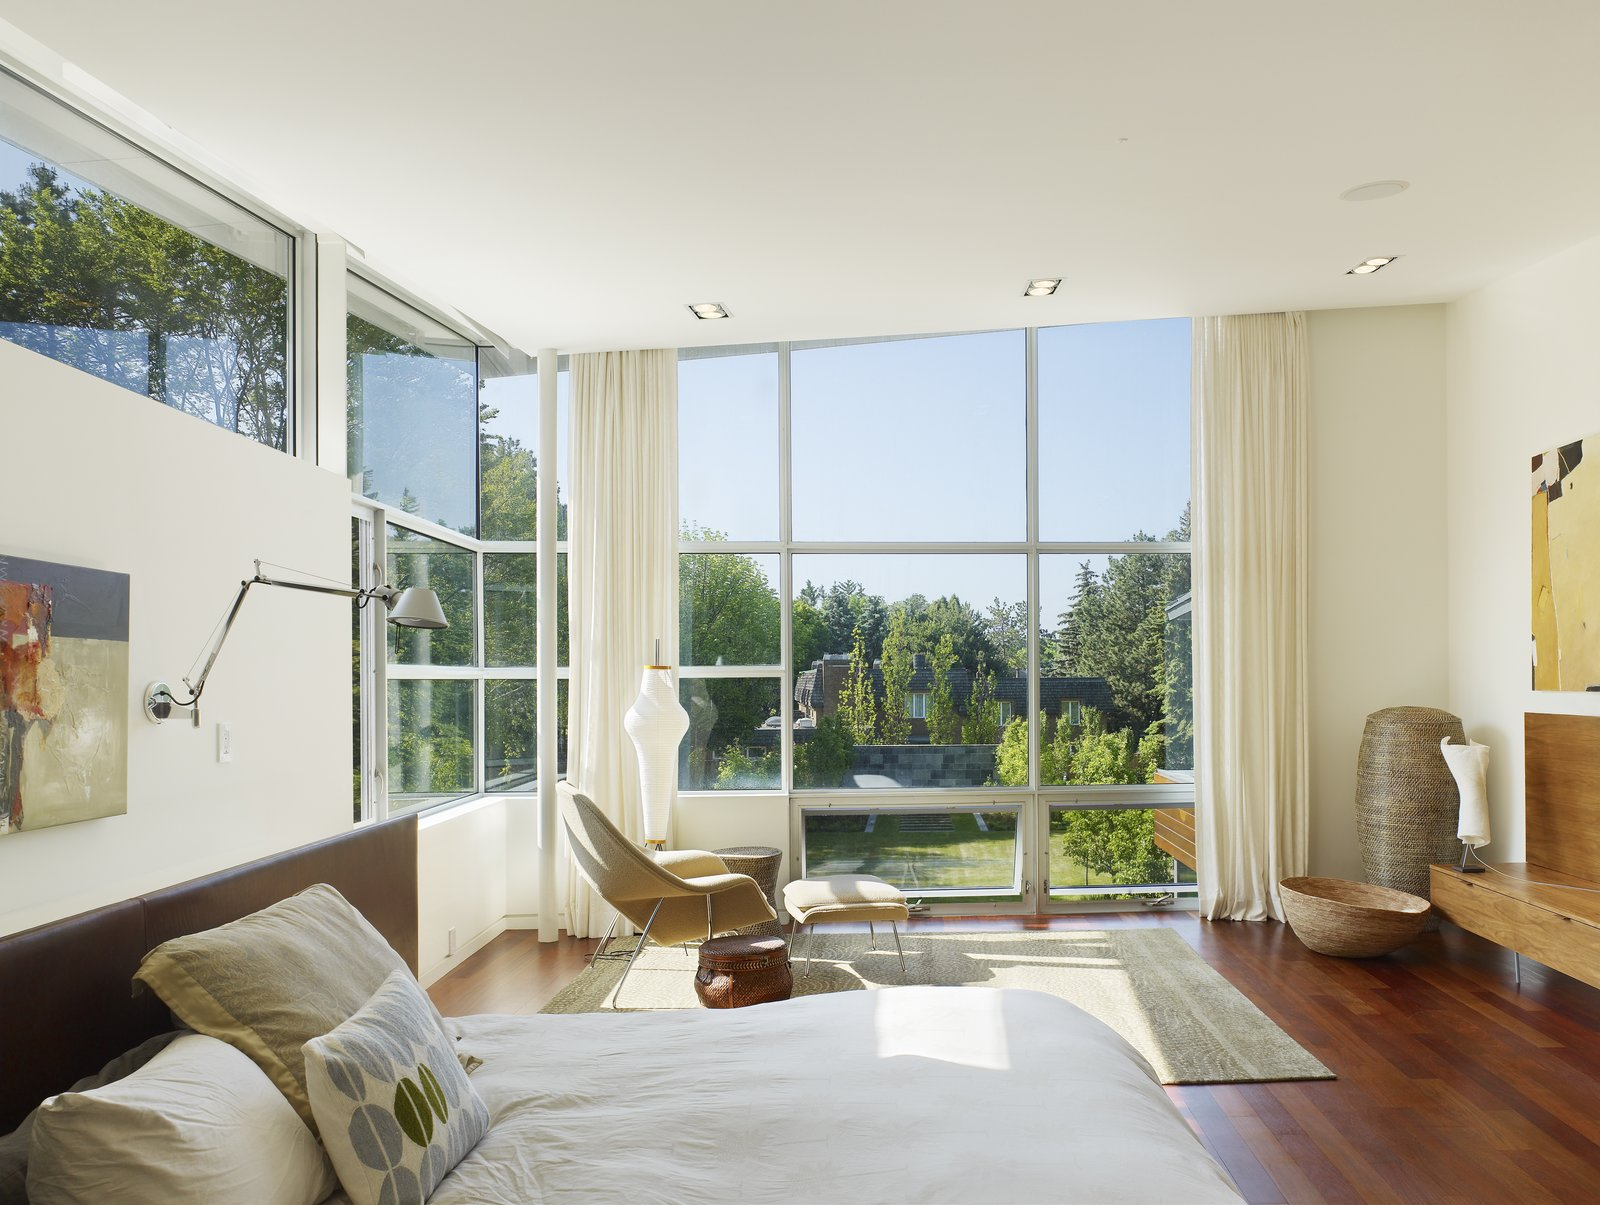 Upstairs, the airy bedrooms open to a central hall with a sitting area, lit by clearstory windows and finished with crisp white walls.  Davis Residence by Abramson Teiger Architects